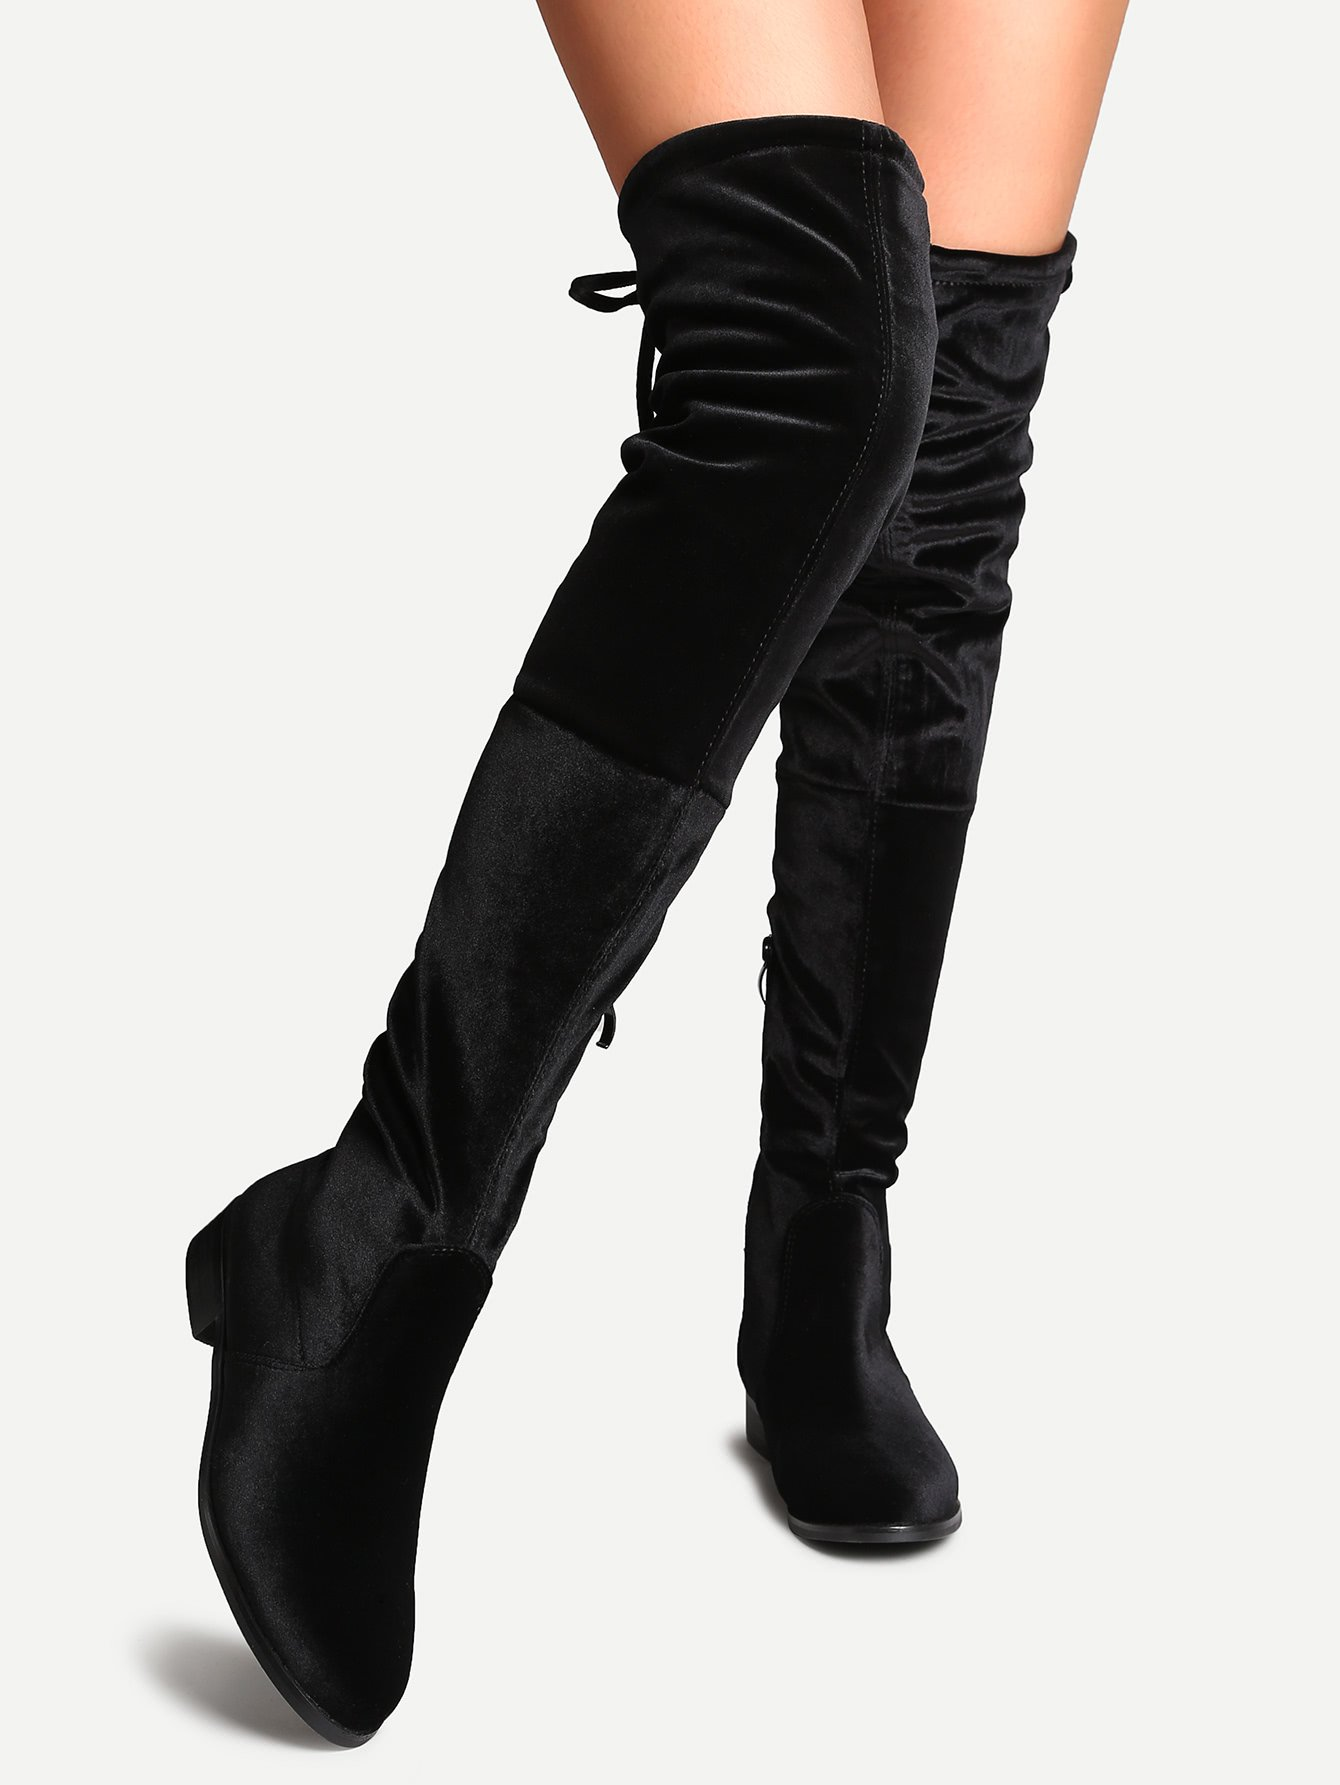 ce94da0eb4 romwe Black Faux Suede Side Zipper Tie Back Over The Knee Boots ...